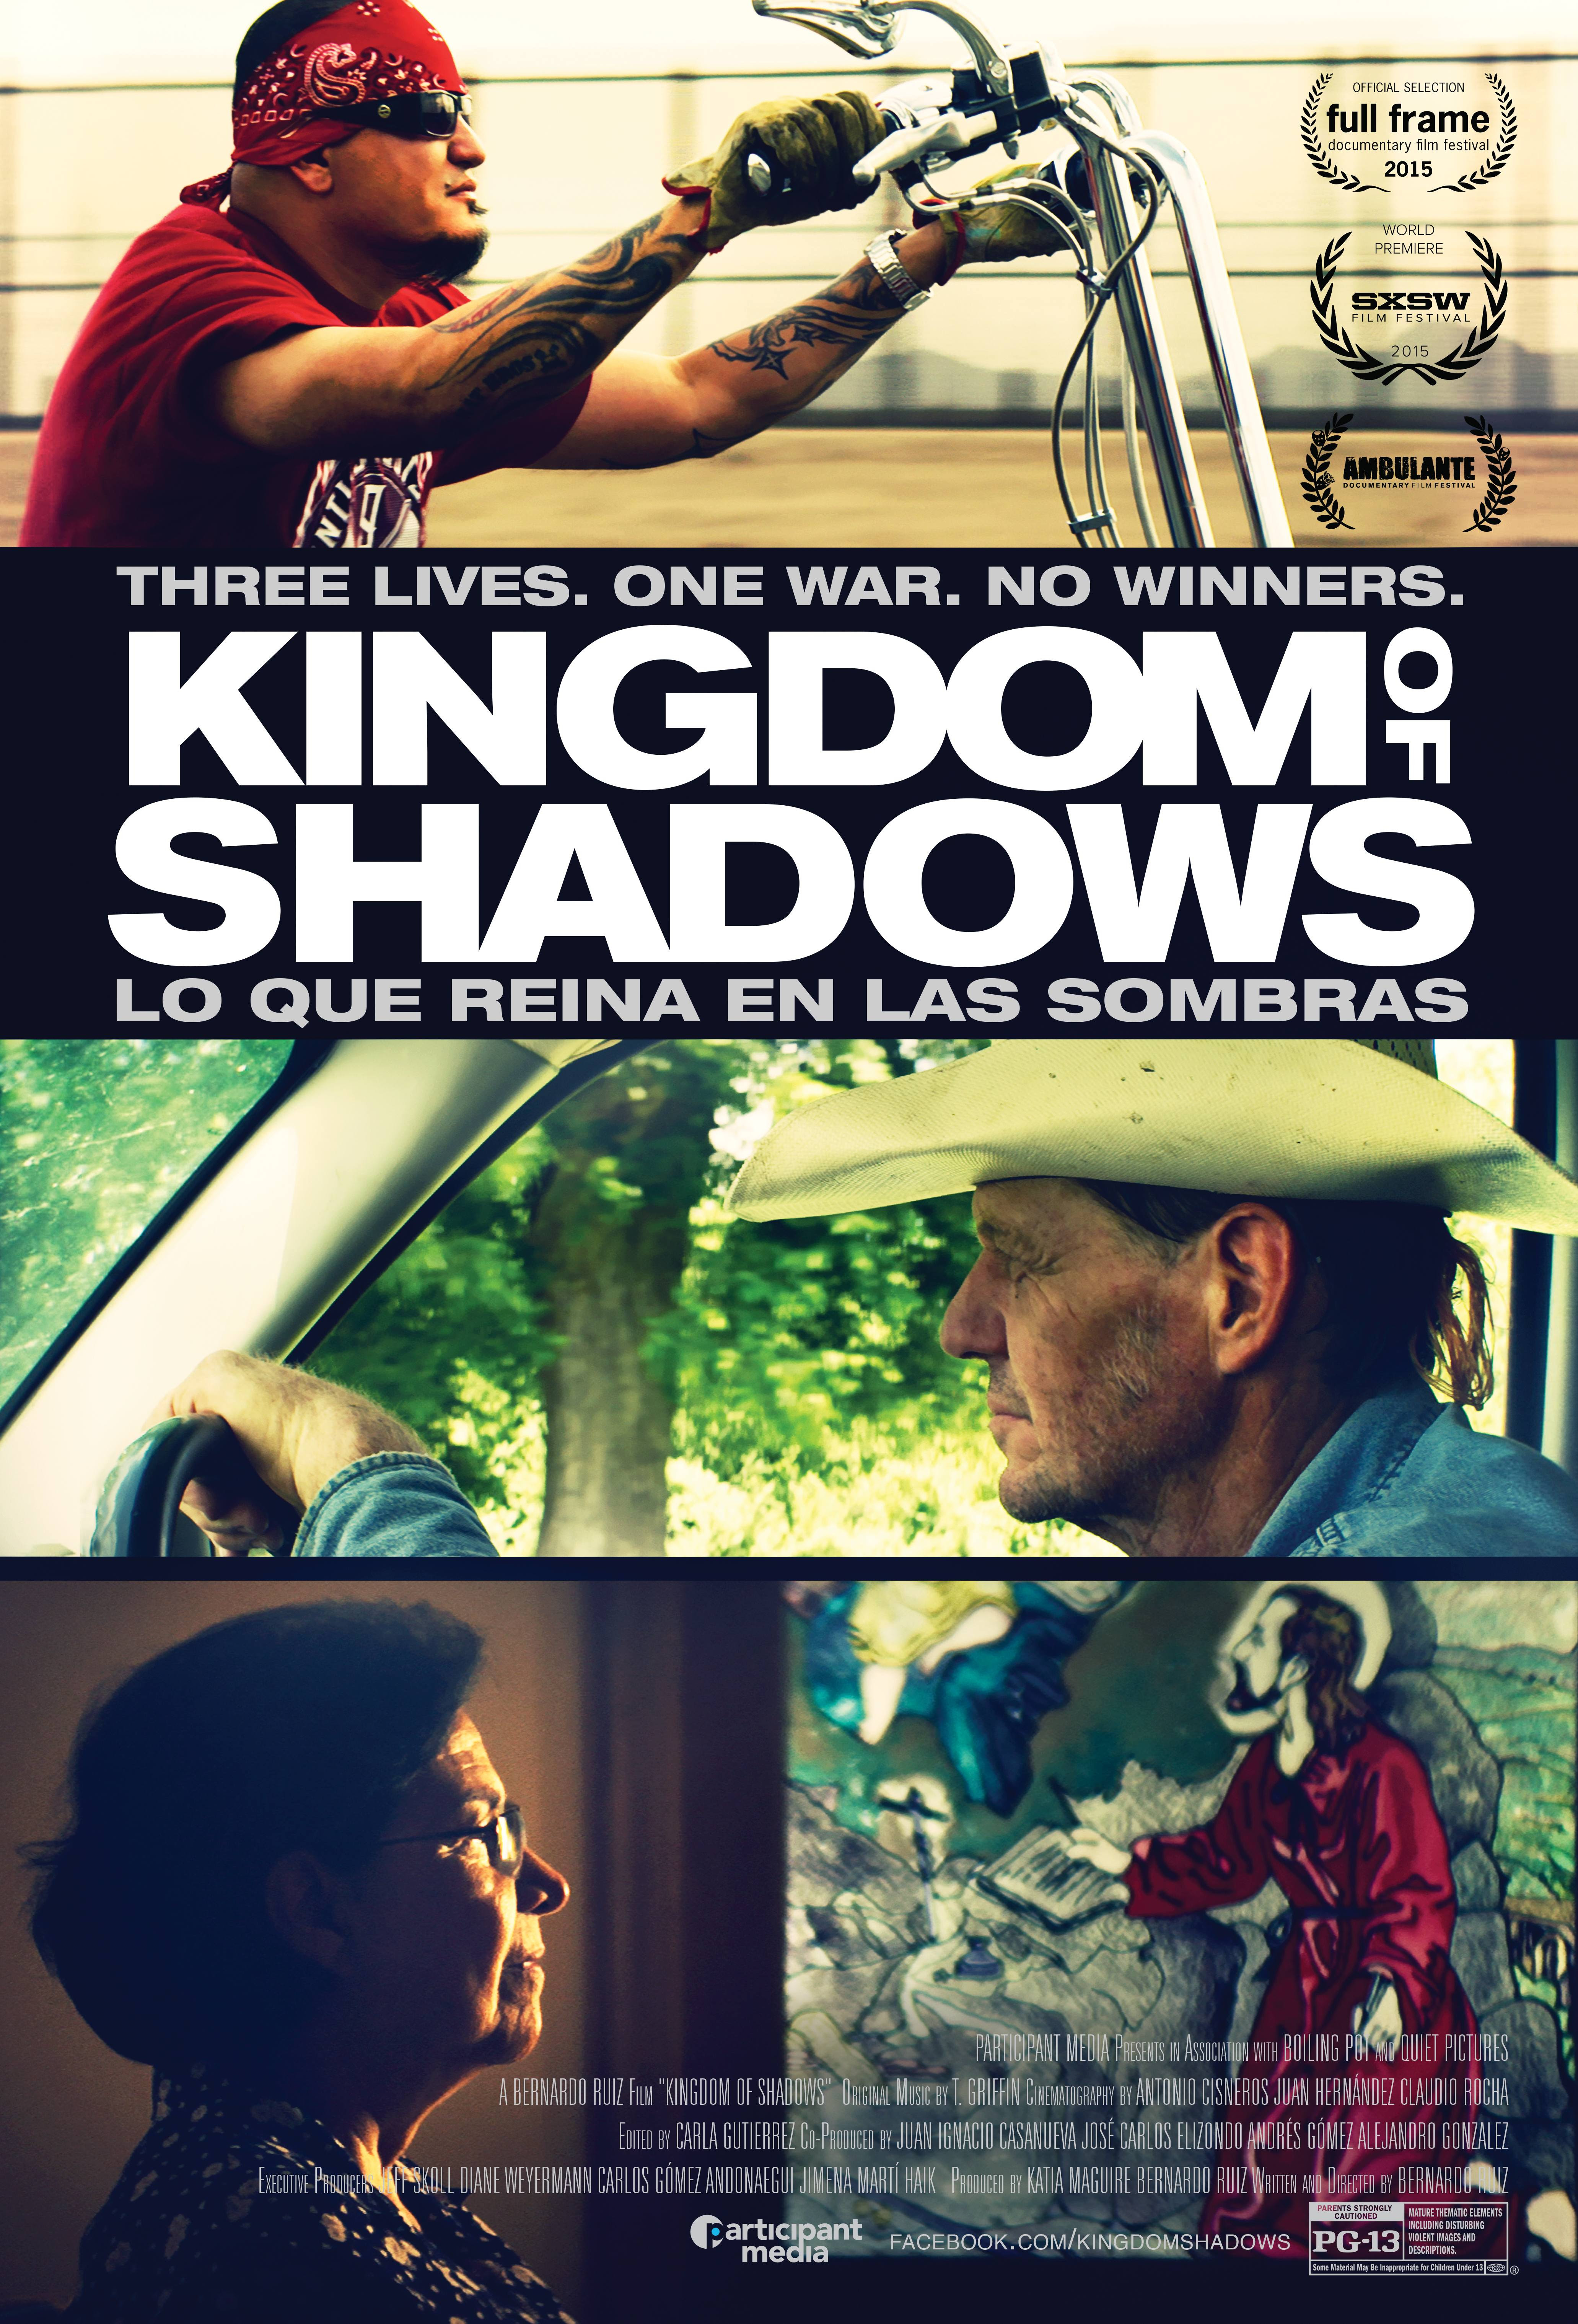 Kingdom of Shadows | Screening & Q&A at Pregones Theater